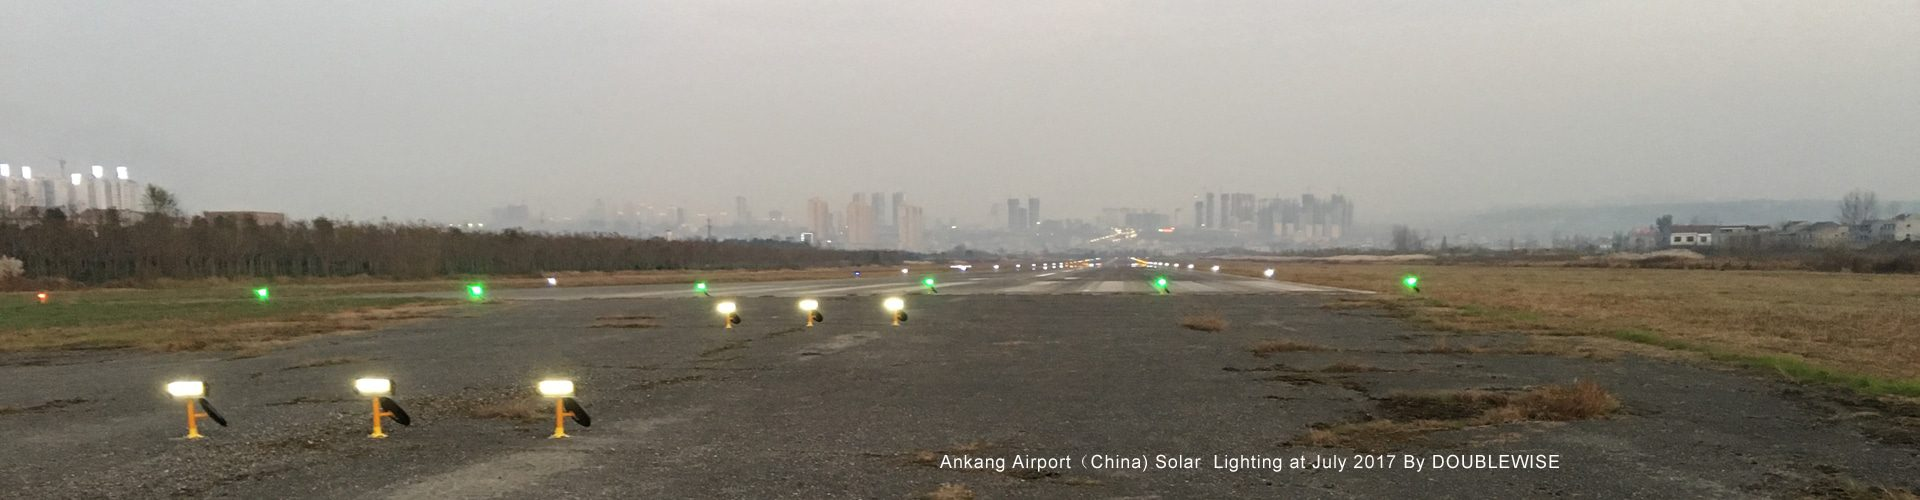 Ankang Airport Lighting at July 2017 By DOUBLEWISE